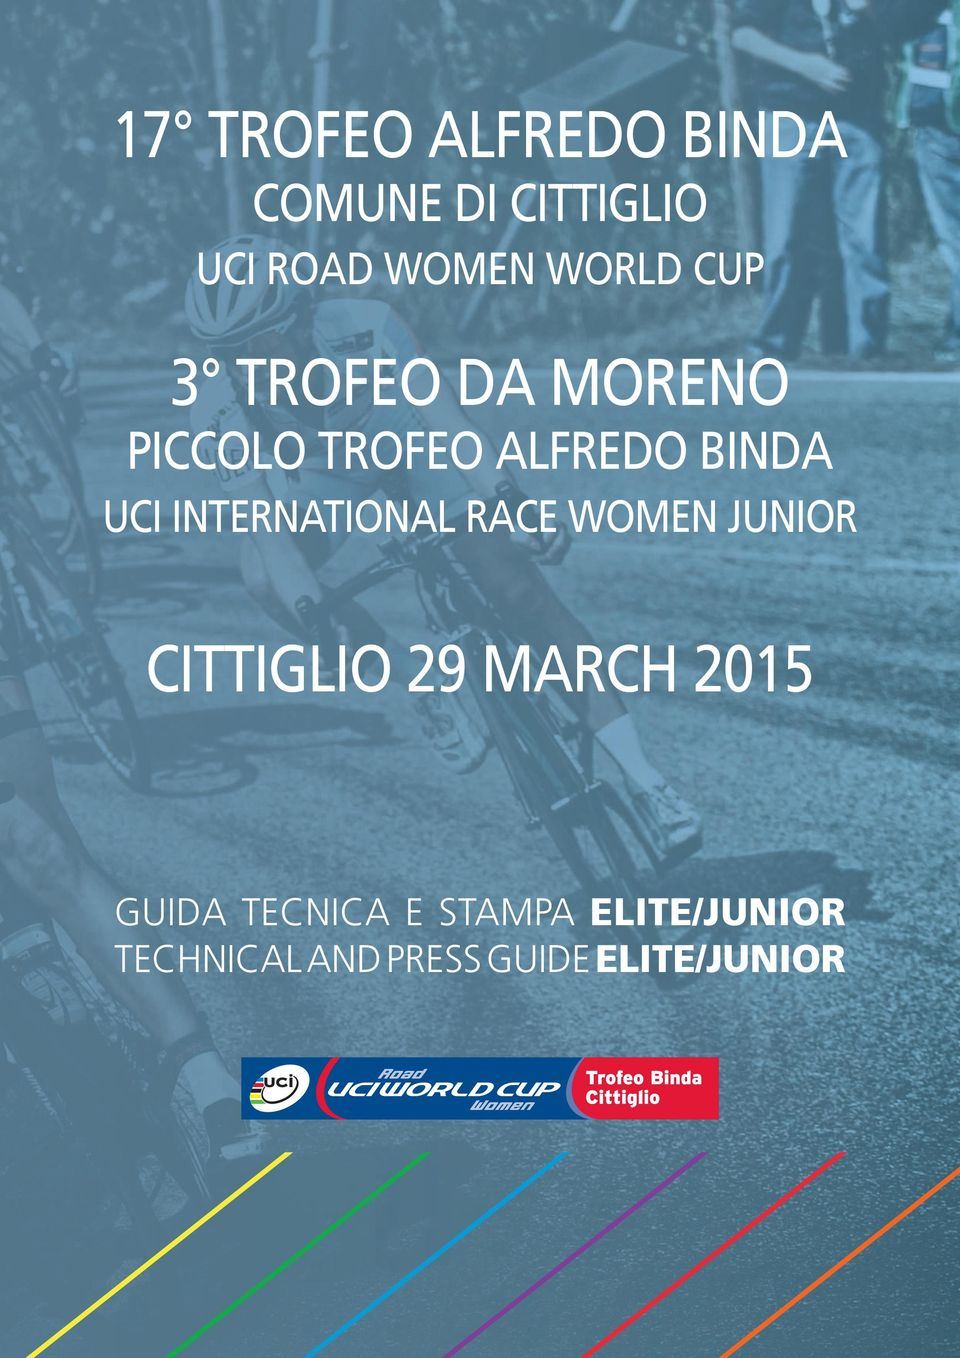 INTERNATIONAL RACE WOMEN JUNIOR CITTIGLIO 29 MARCH 2015 GUIDA